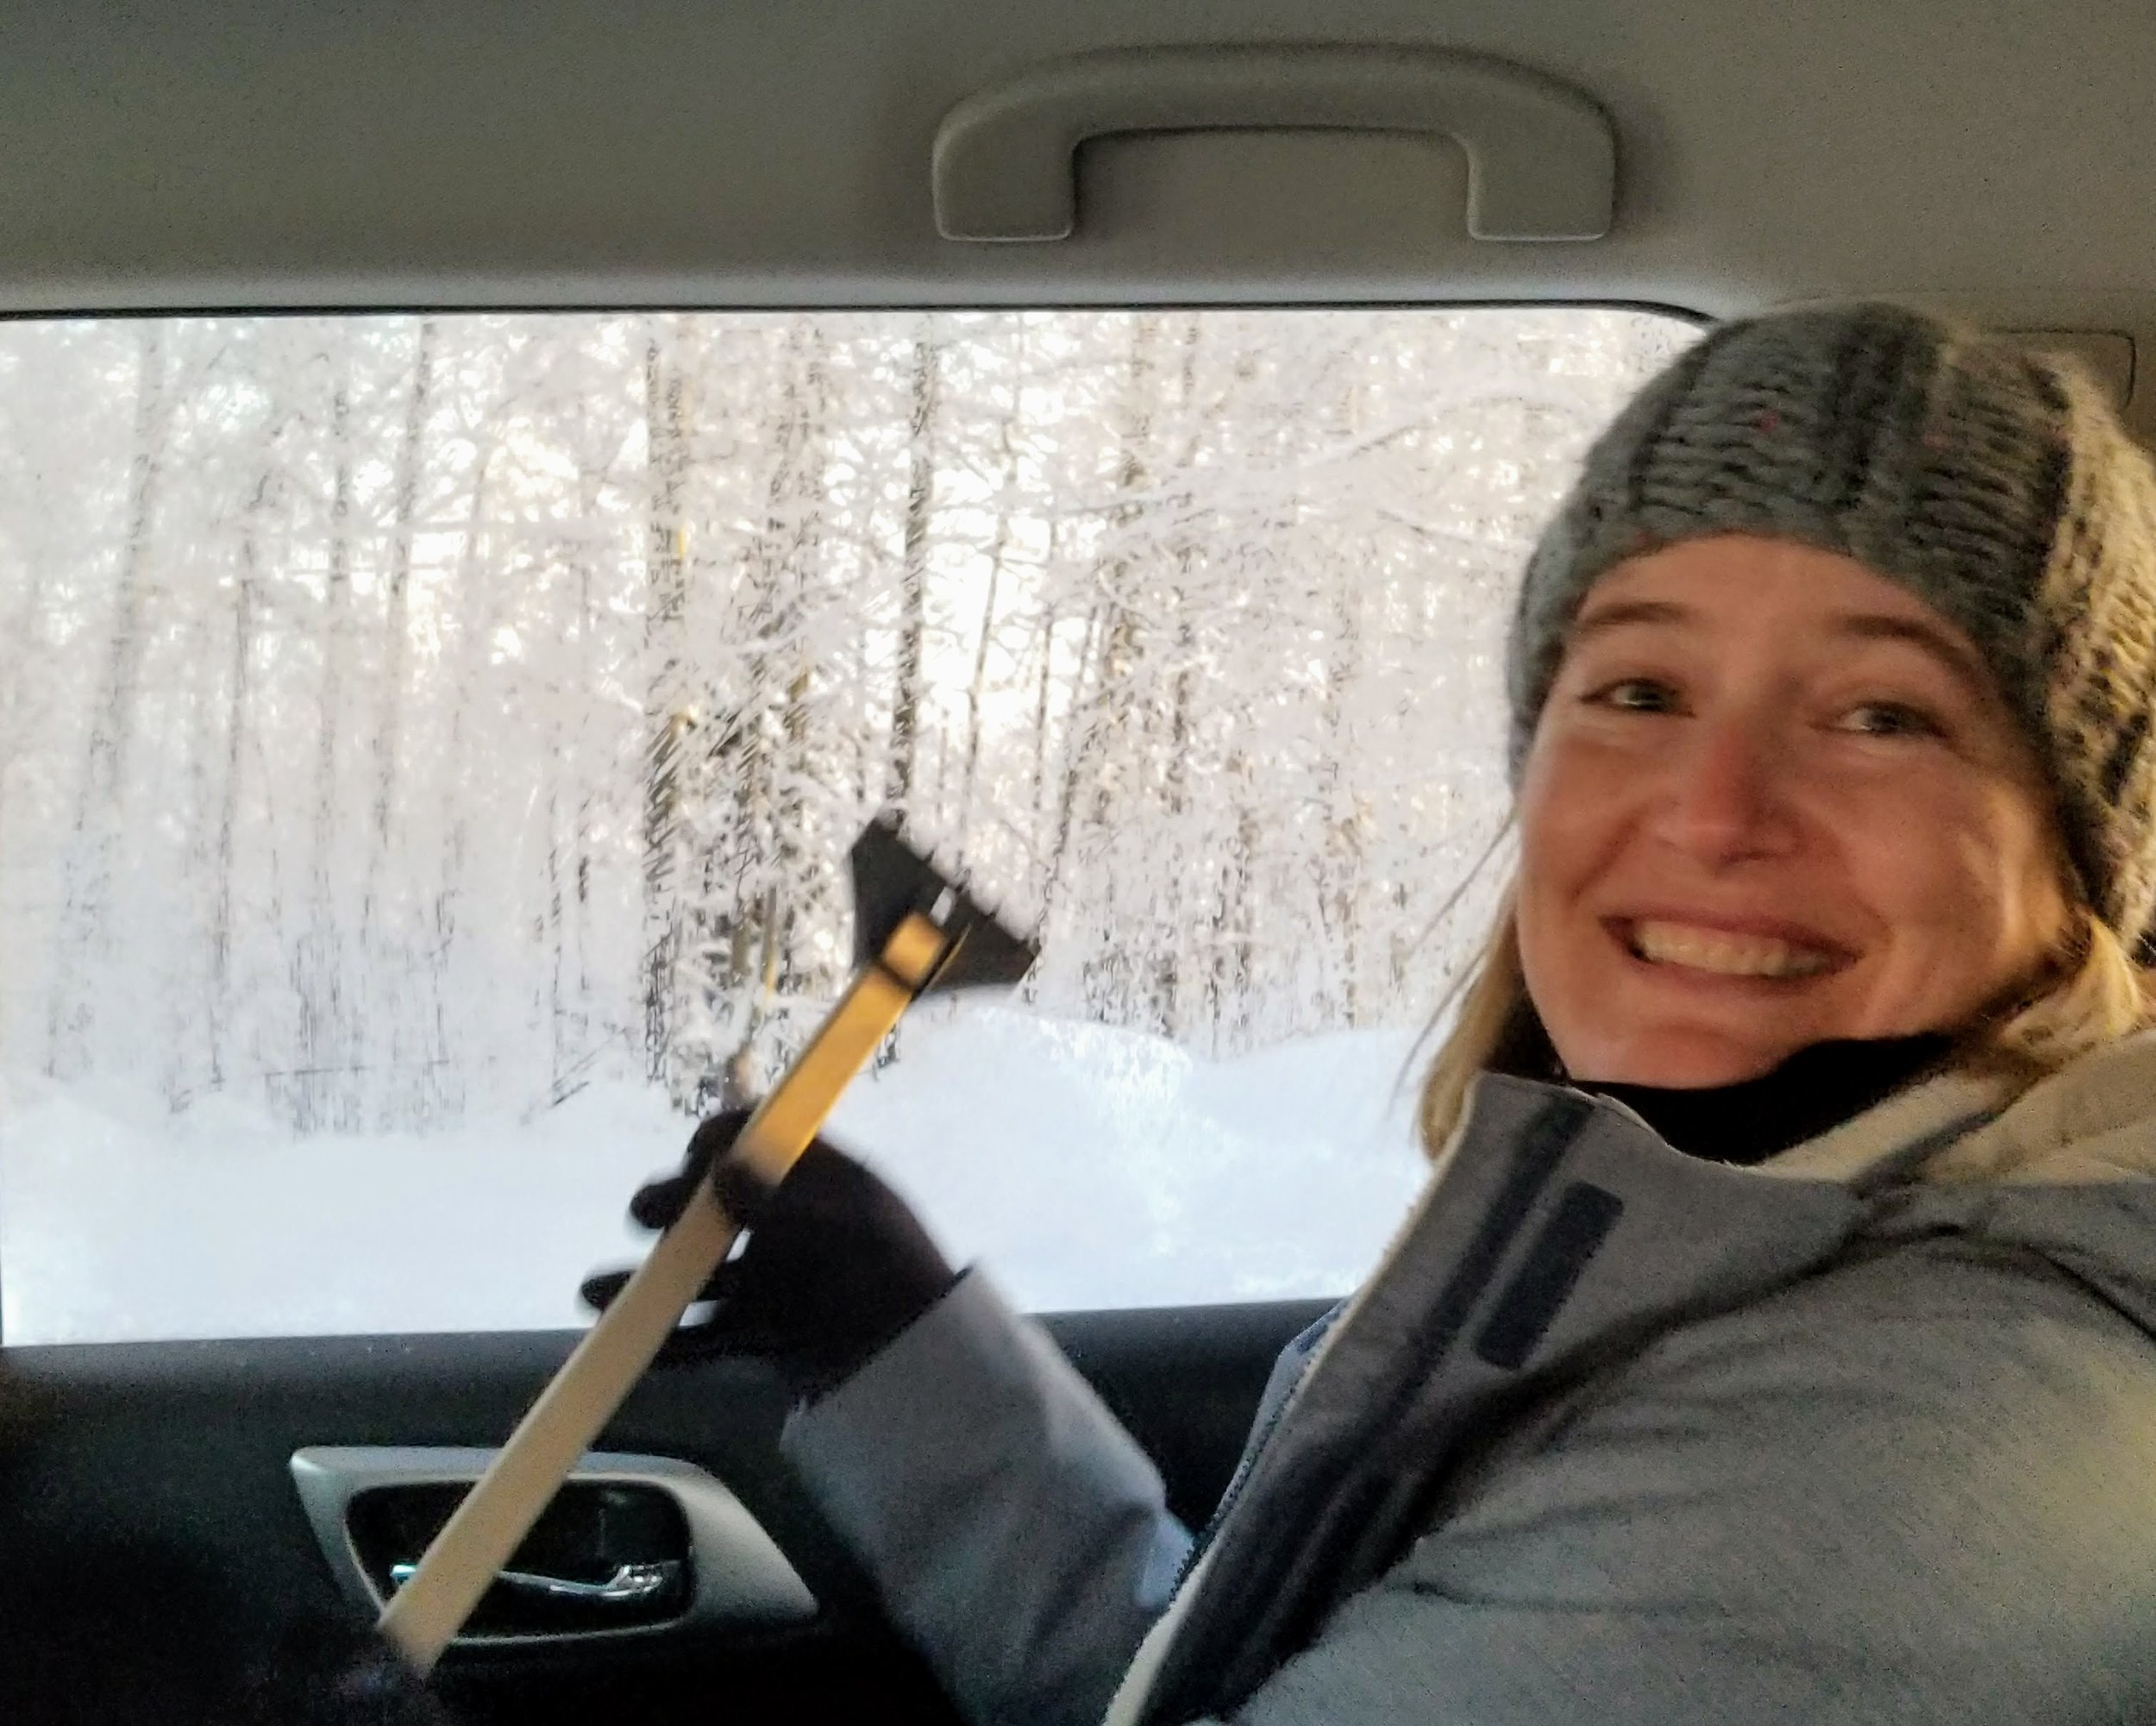 The ice scraper that came with the rental car was pathetic. My driver's license worked much better.